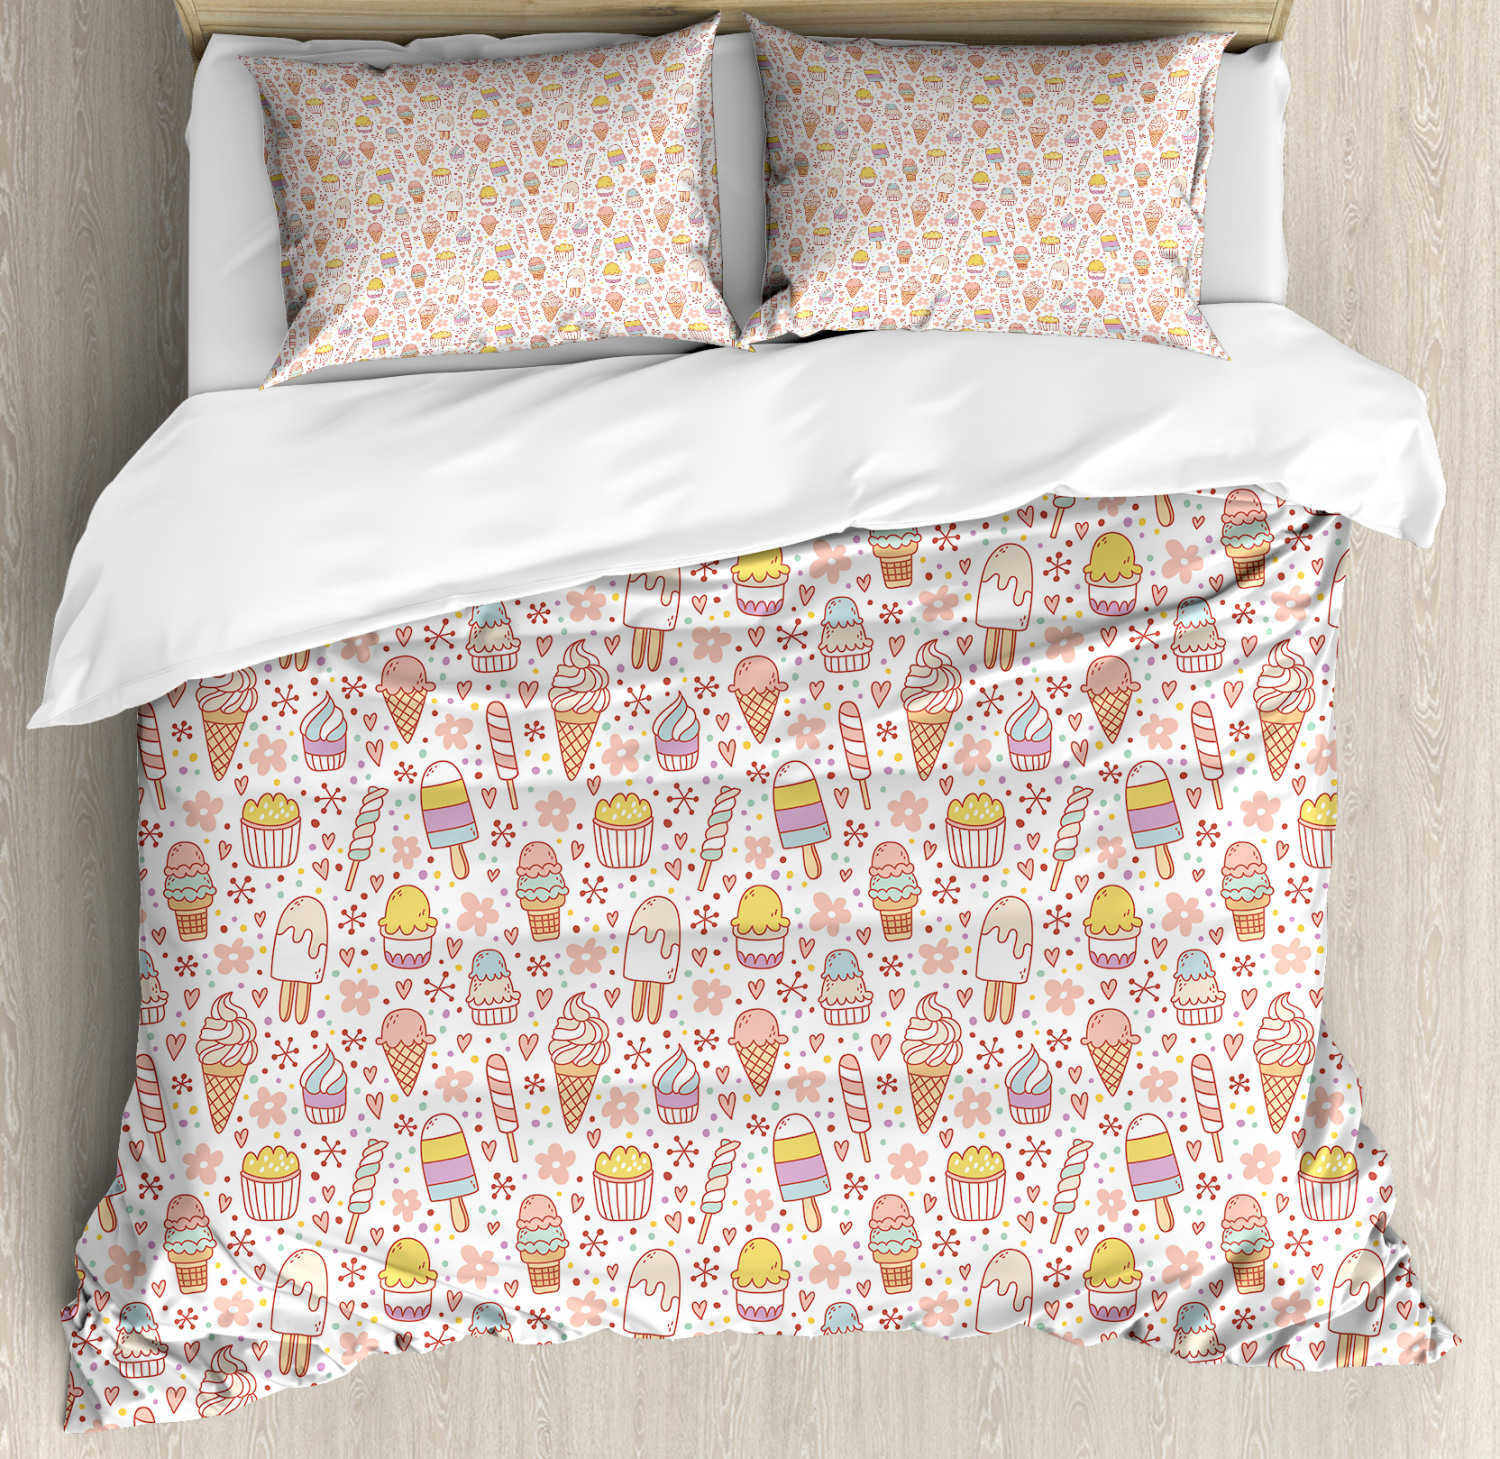 Ice Cream Duvet Cover Set with Pillow Shams Cute Candies Print